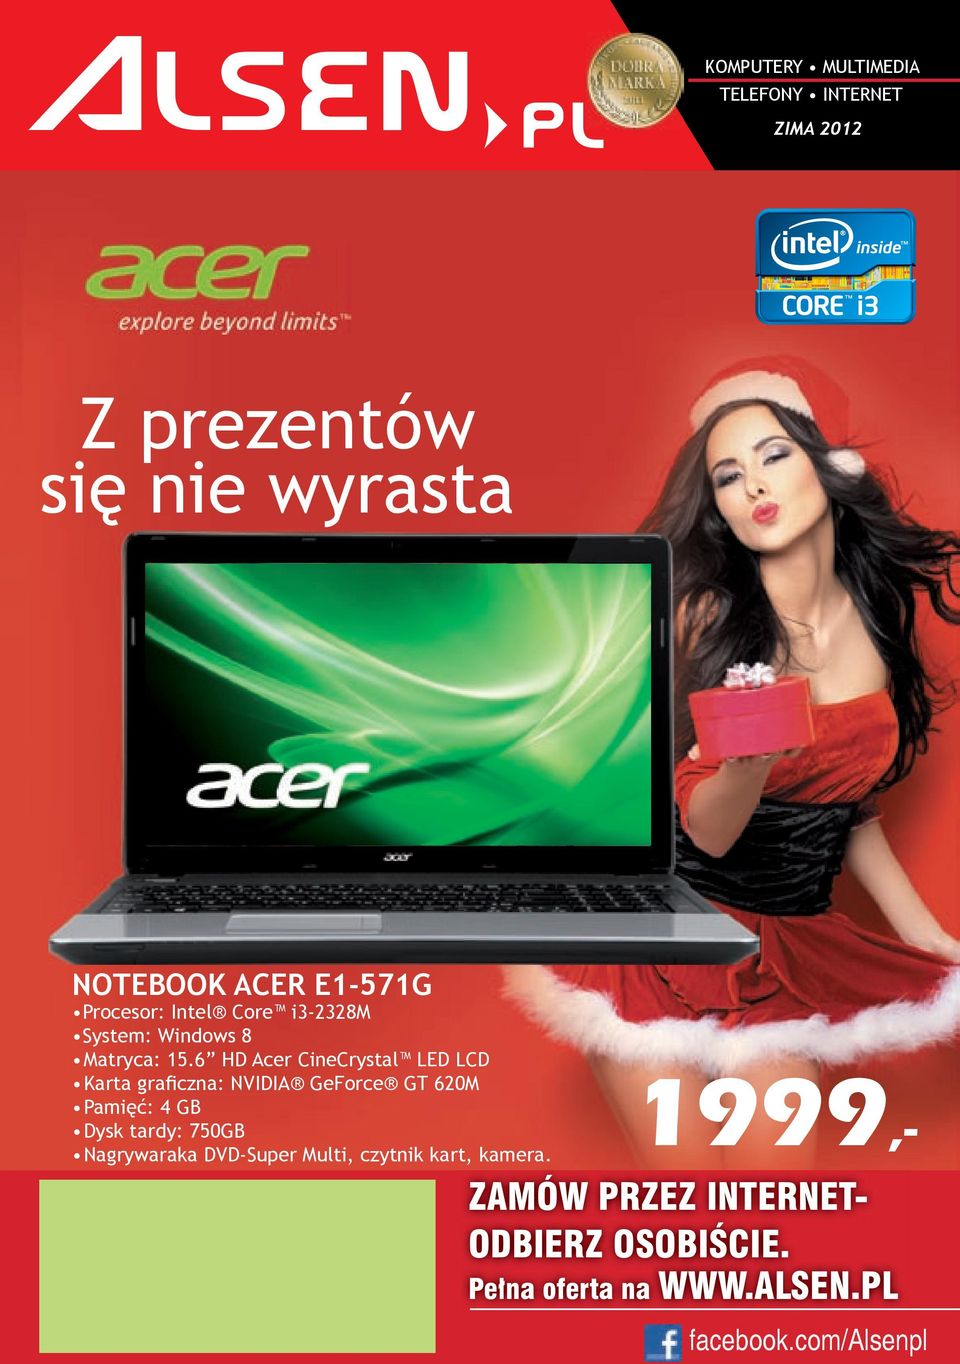 6 HD Acer CineCrystal LED LCD Karta graficzna: NVIDIA GeForce GT 620M Pamięć: 4 GB Dysk tardy: 750GB